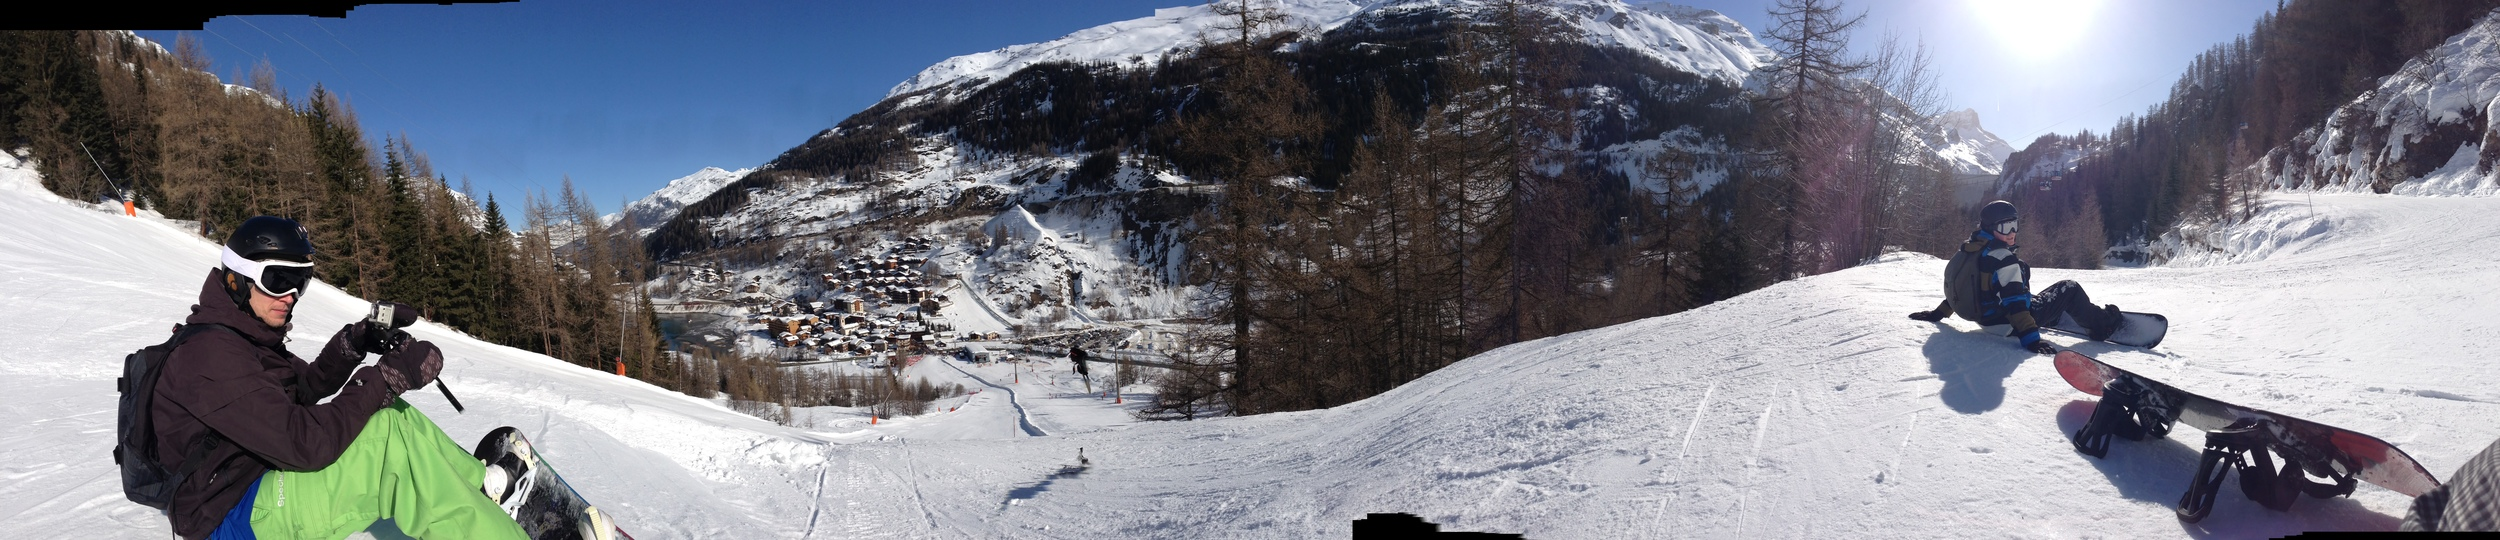 The view of Tignes Les Brevieres. Maarten on the left, Sjors on the right.